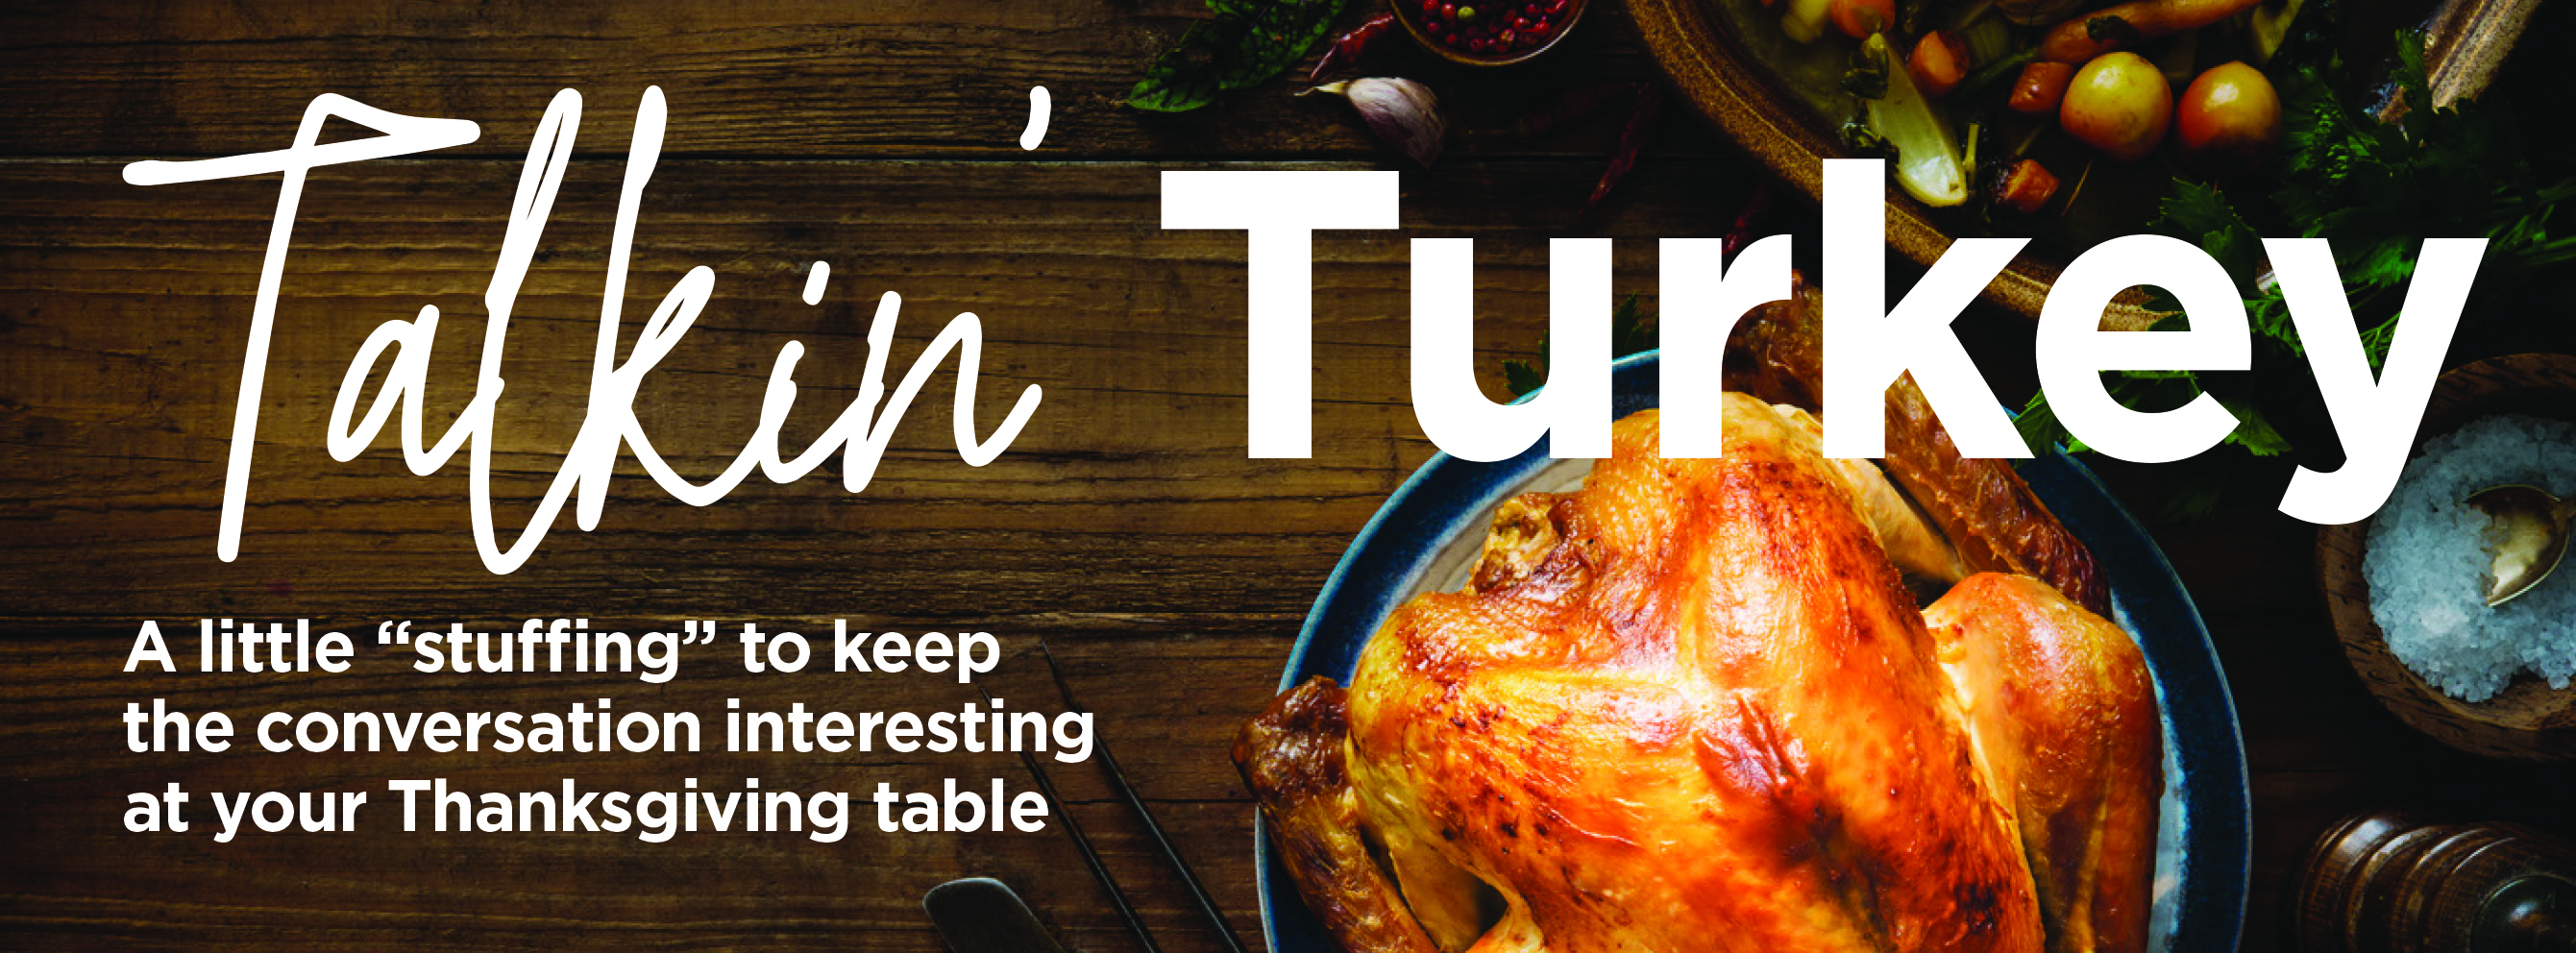 Best Thanksgiving Facts and Trivia